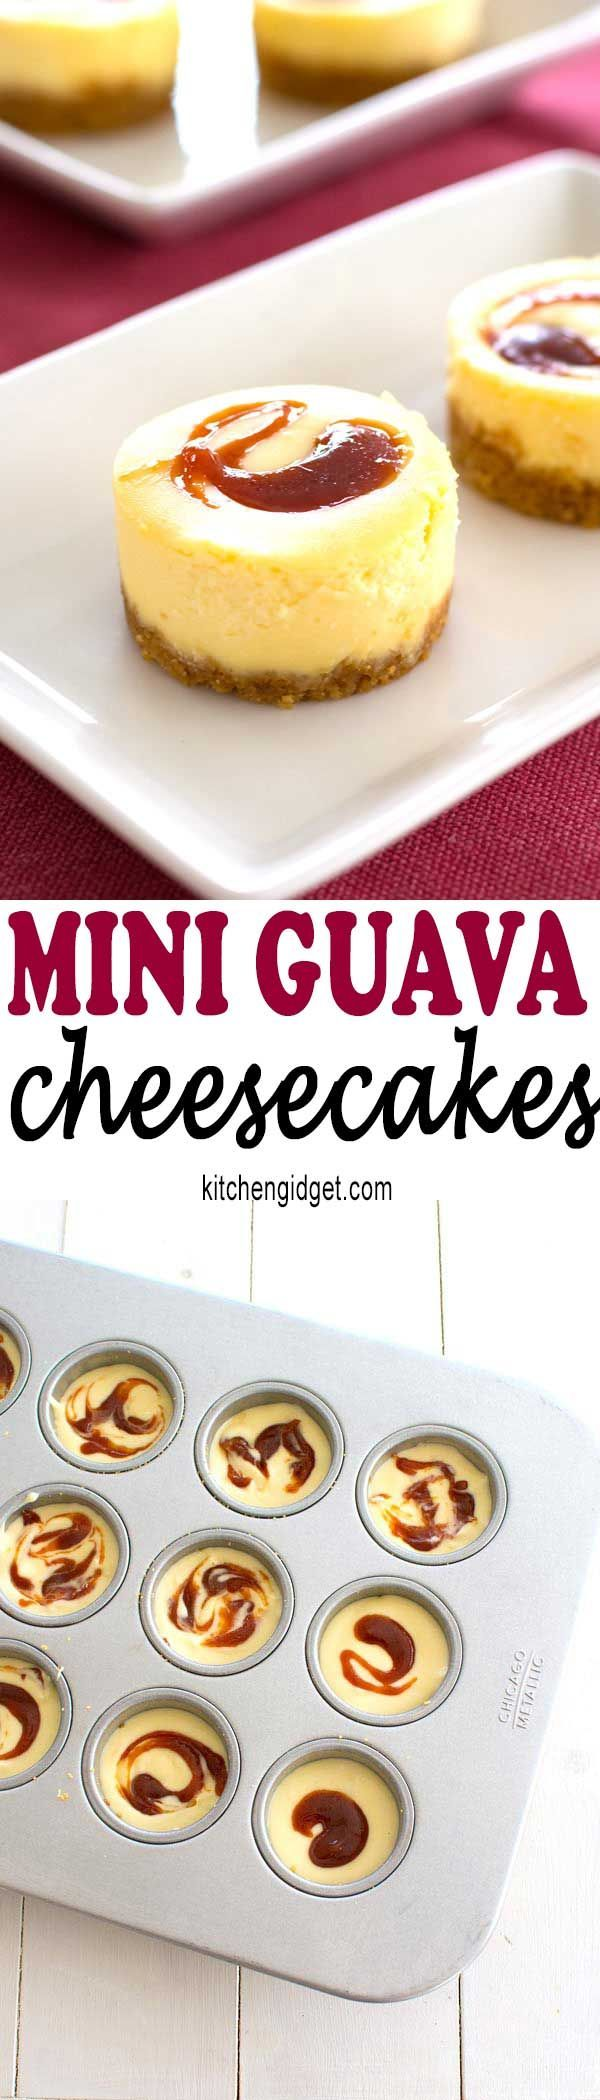 These tropical mini guava cheesecakes taste as good as they look! Perfect dessert recipe for a Puerto Rican or Cuban dinner!